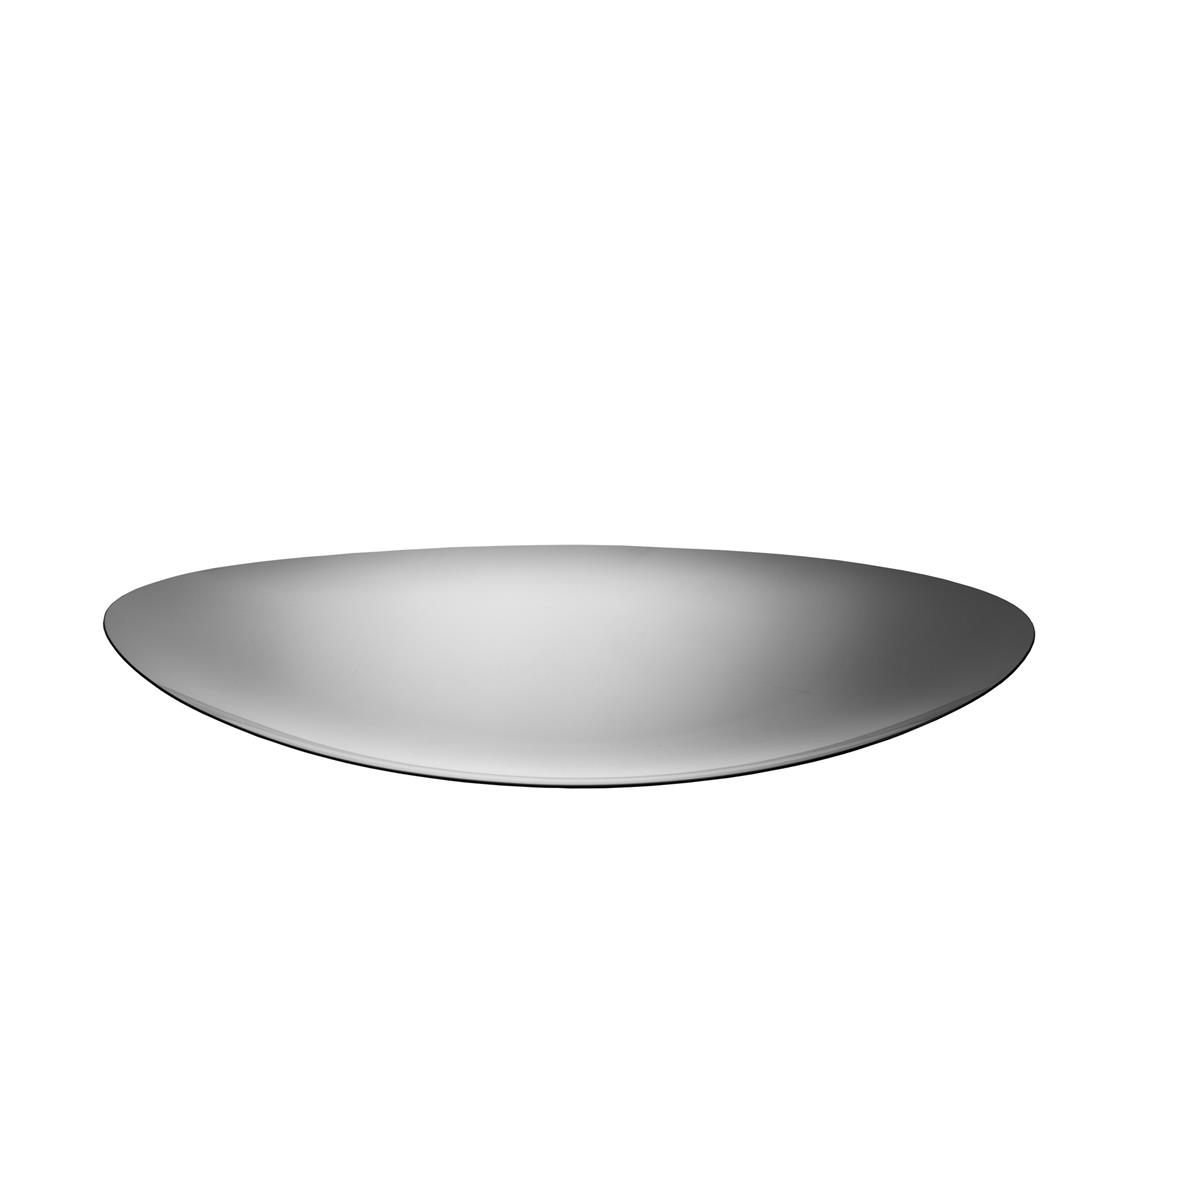 Alessi-Colombina collection Tray in 18/10 stainless steel